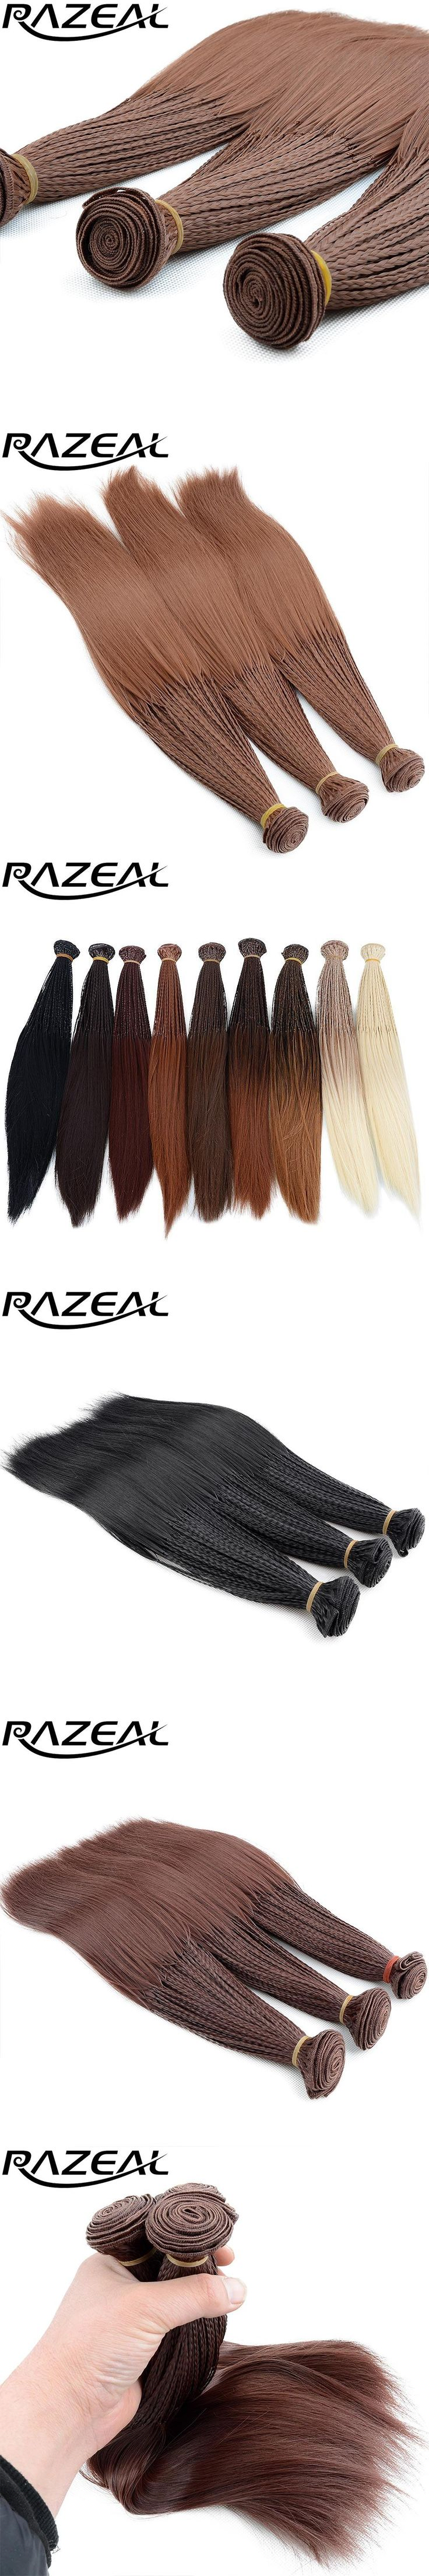 Razeal Black Blonde Synthetic Braiding Hair Ombre Braid Extensions 14 Inch 280 Roots/Pack Crochet Braids Synthetic Hair Weave